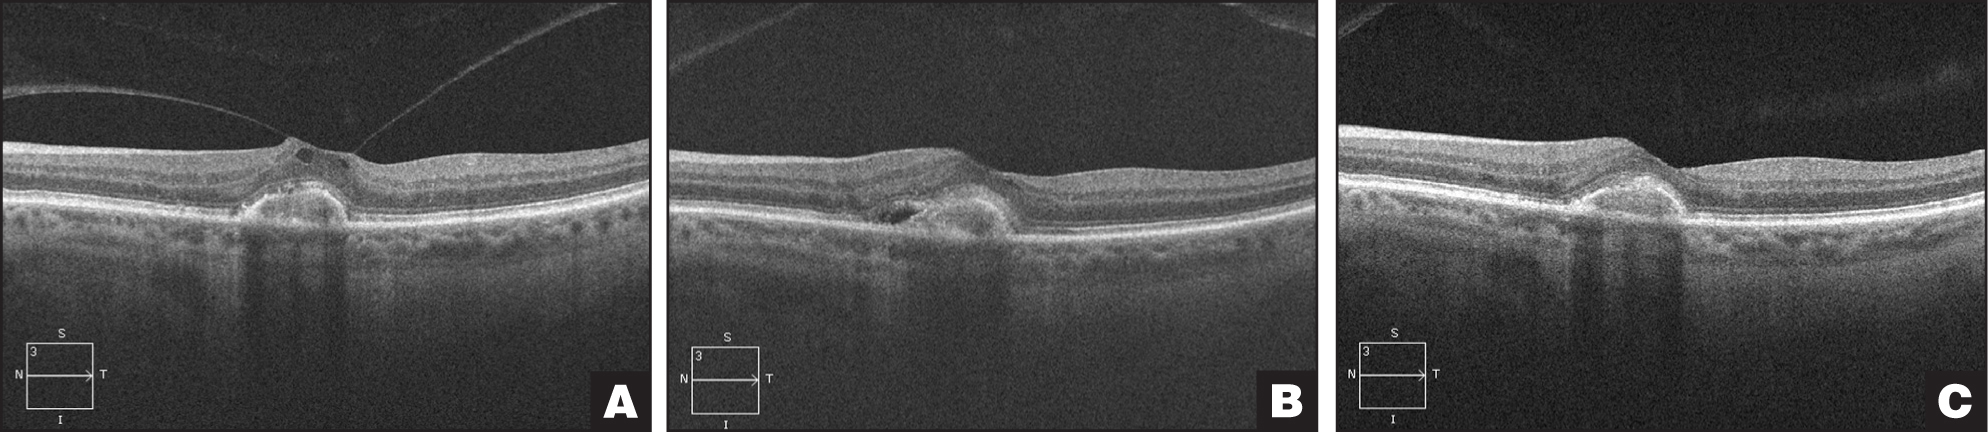 (A) Wet macular degeneration controlled with regular aflibercept injections was treated with ocriplasmin. (B) At day 14, the vitreomacular adhesion released but the subretinal fluid recurred and was treated with repeat aflibercept and (C) had subsequent resolution of subretinal fluid 8 weeks later.